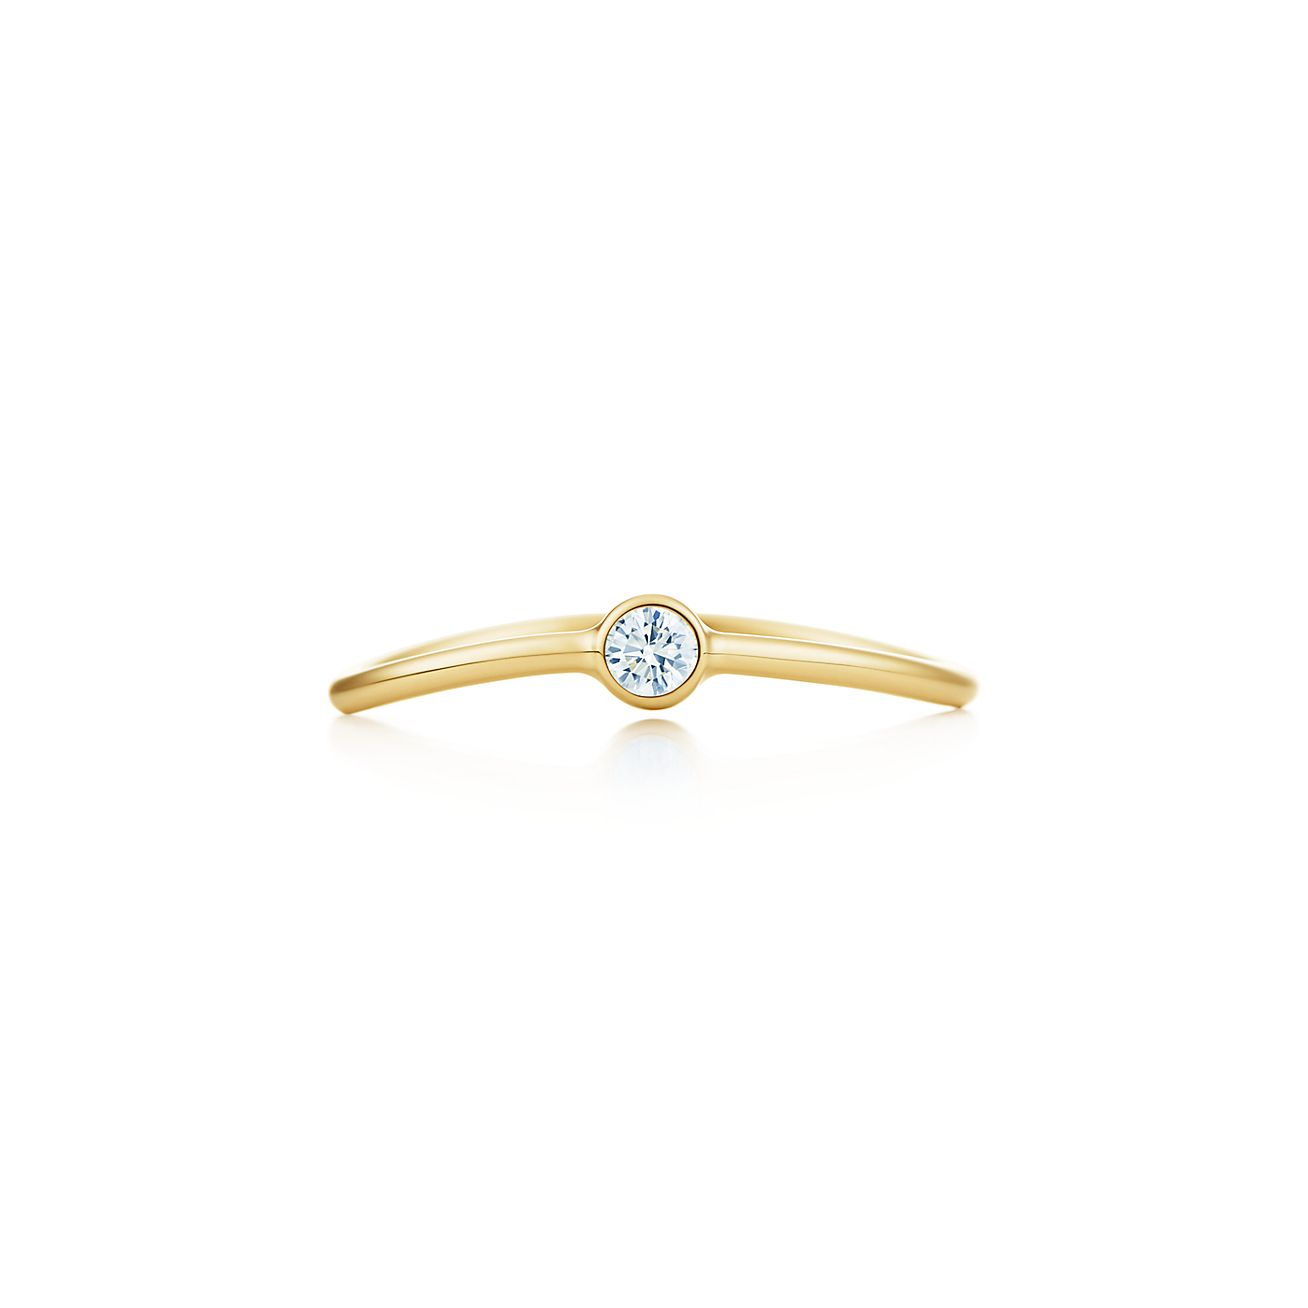 Elsa Peretti Wave single-row diamond ring in 18k gold - Size 5 1/2 Tiffany & Co.